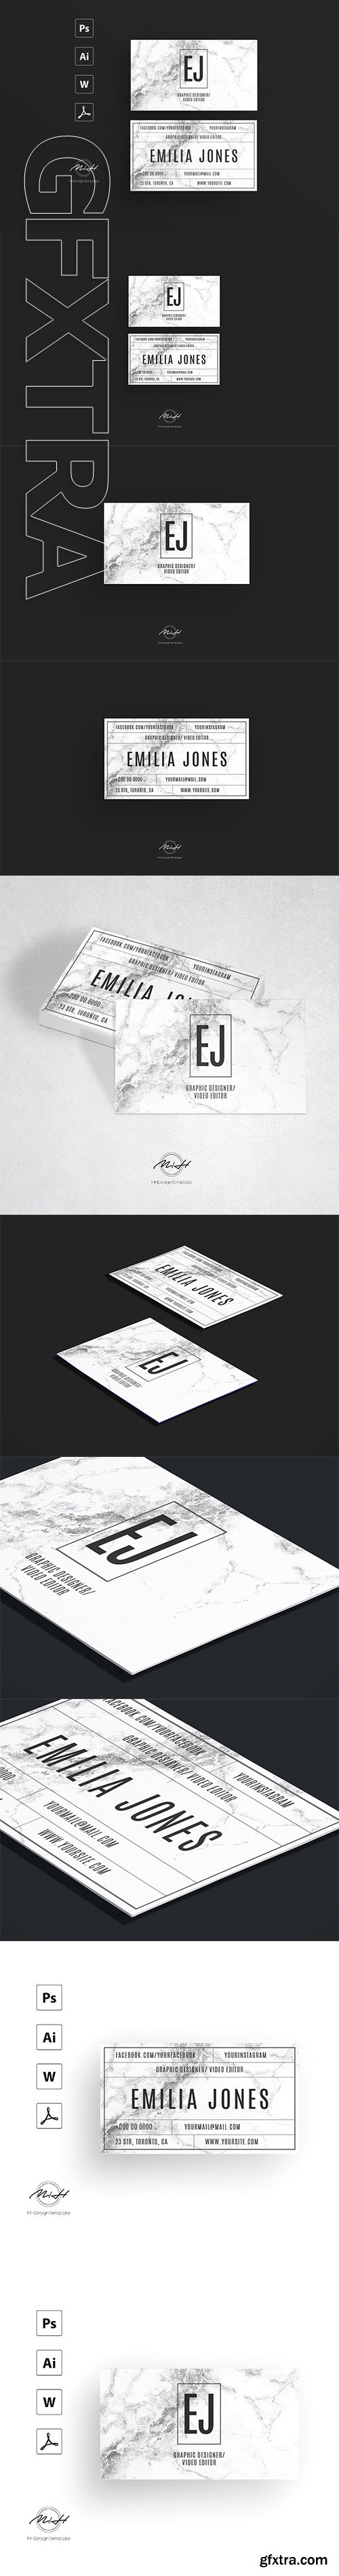 CreativeMarket - White marble bussiness card template 2632862